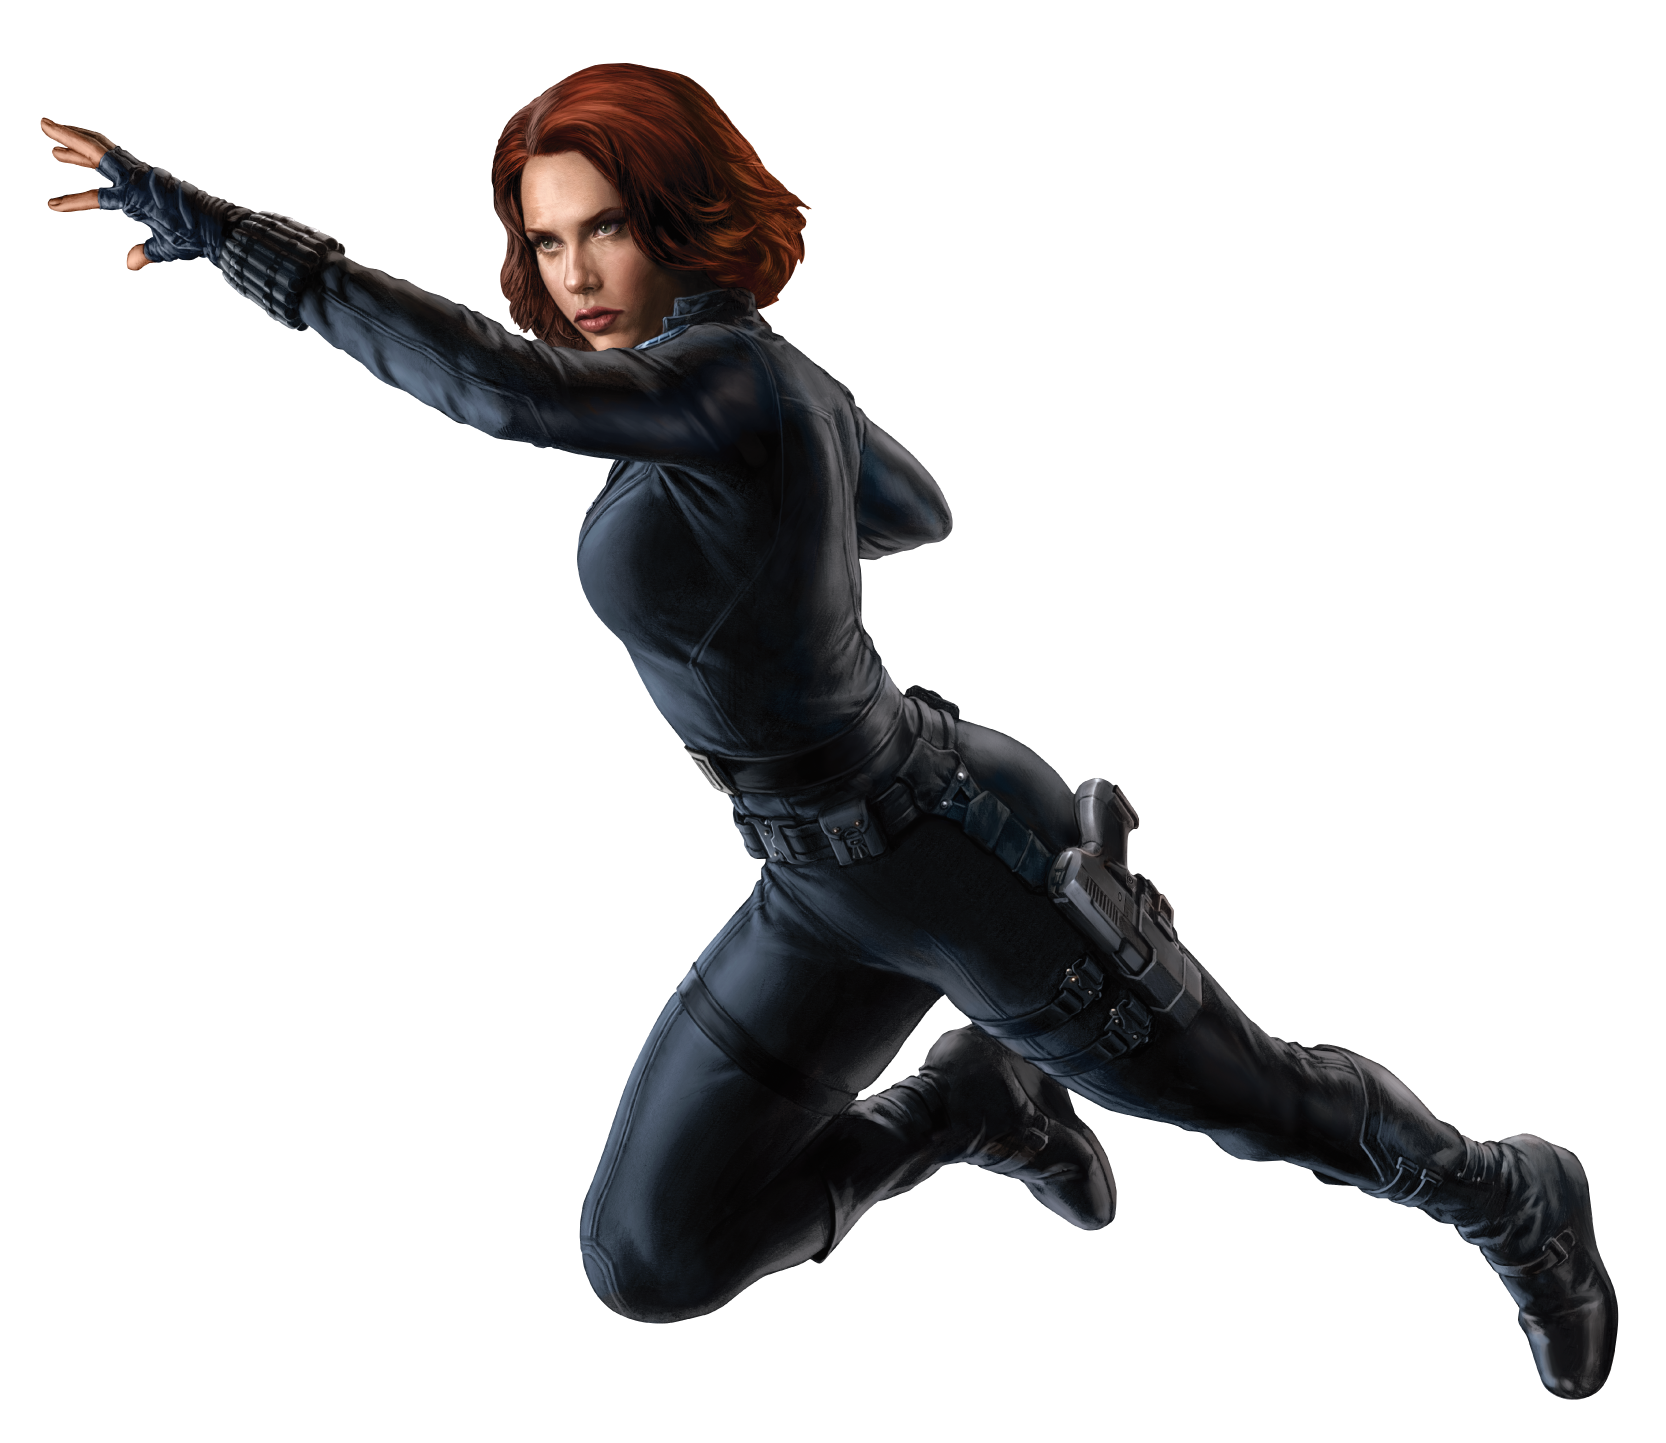 Black Widow PNG - 27820